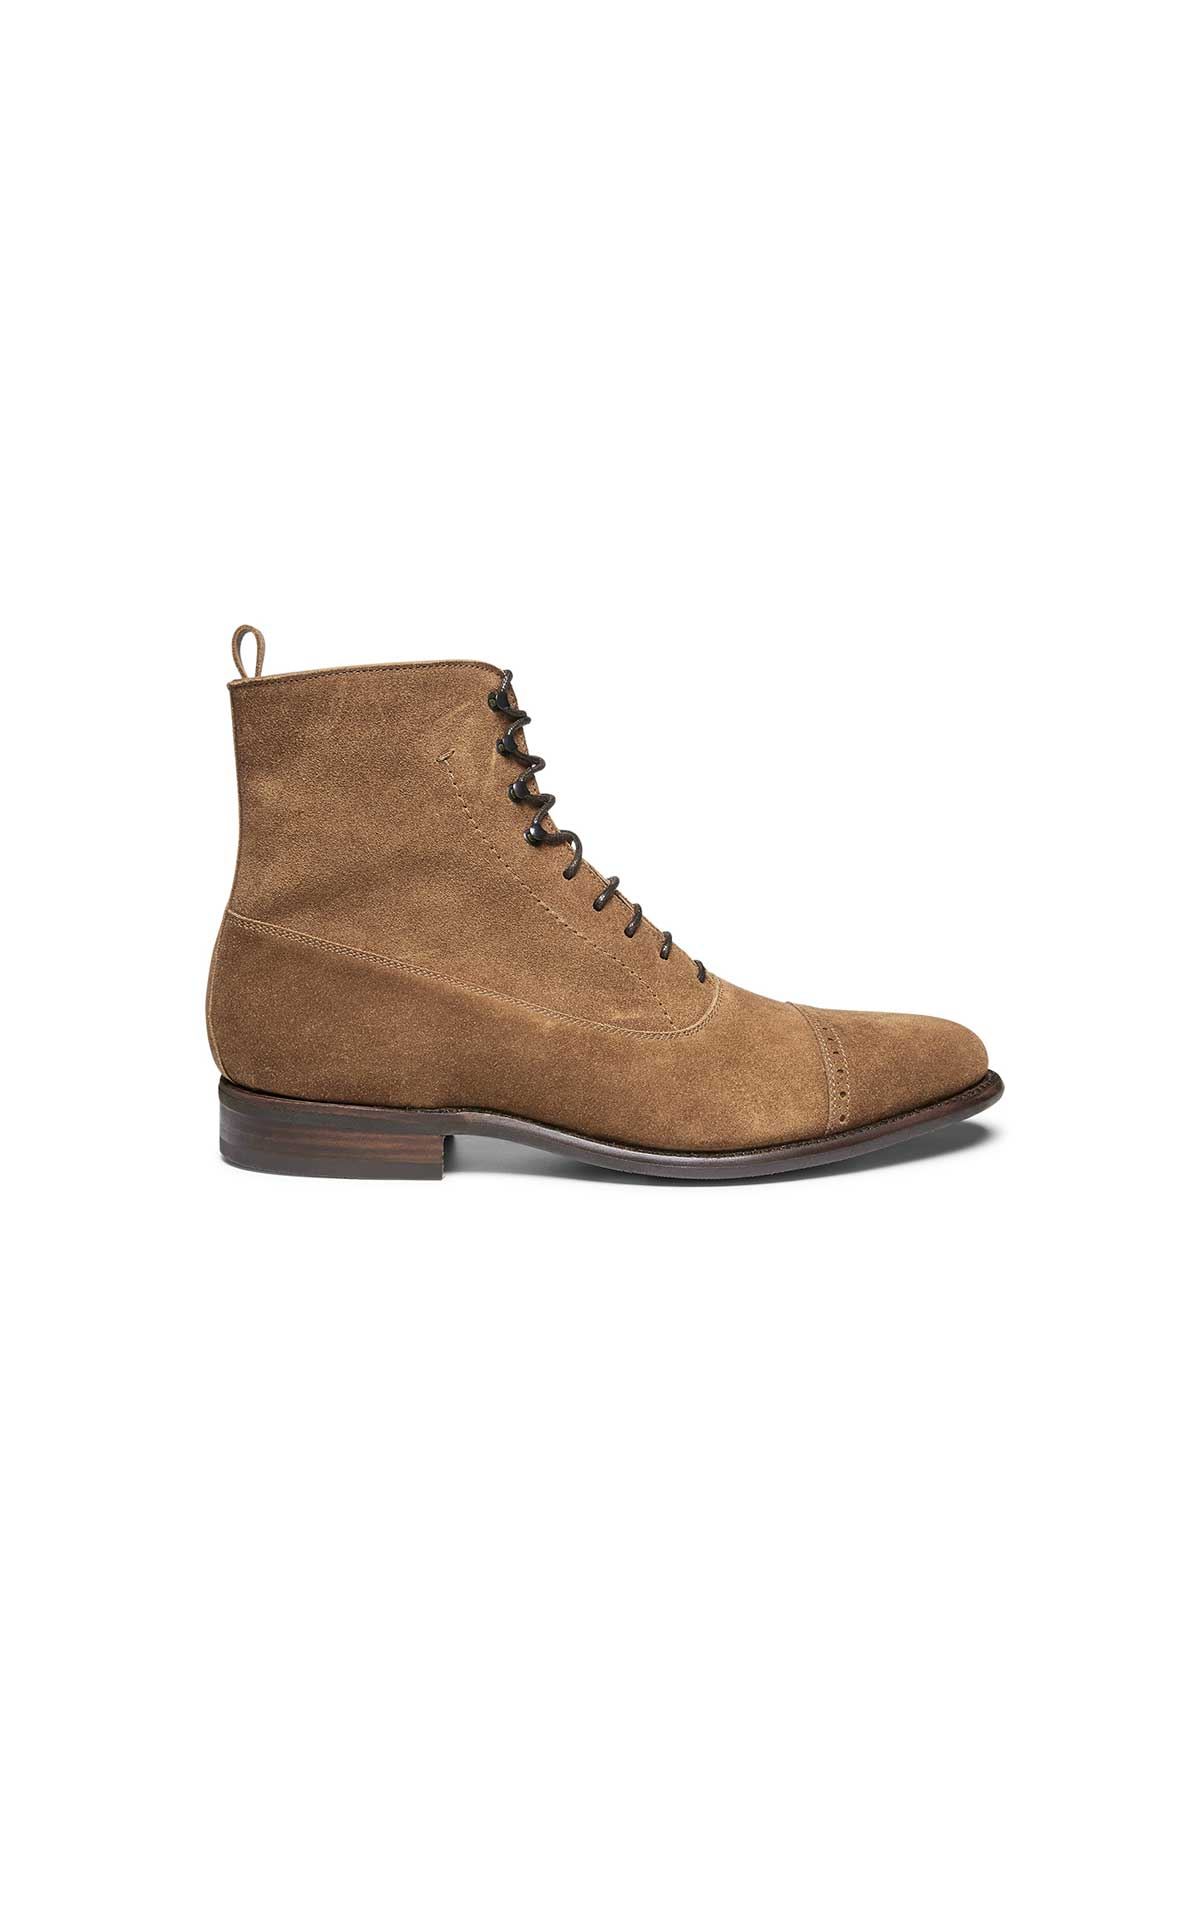 Camel suede ankle boot for men from Lottusse